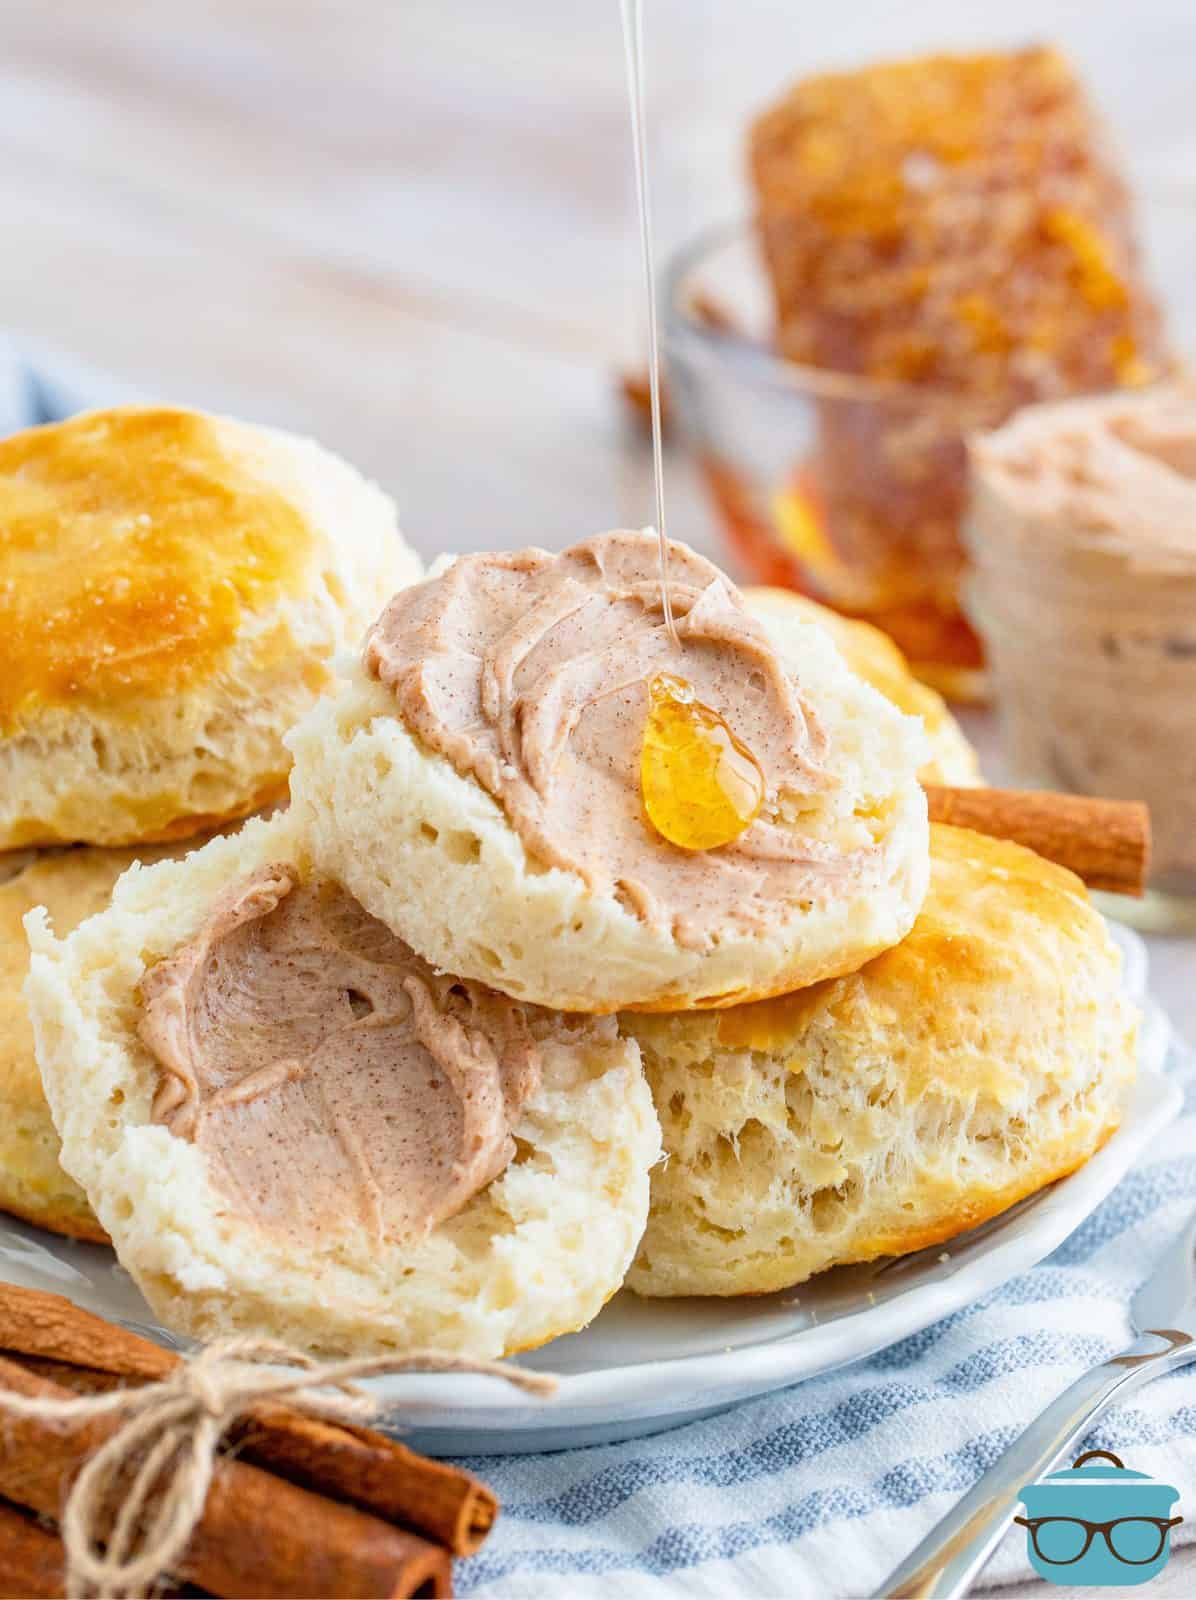 Split biscuits with Texas Roadhouse Cinnamon Honey Butter spread on with a drizzle of honey.